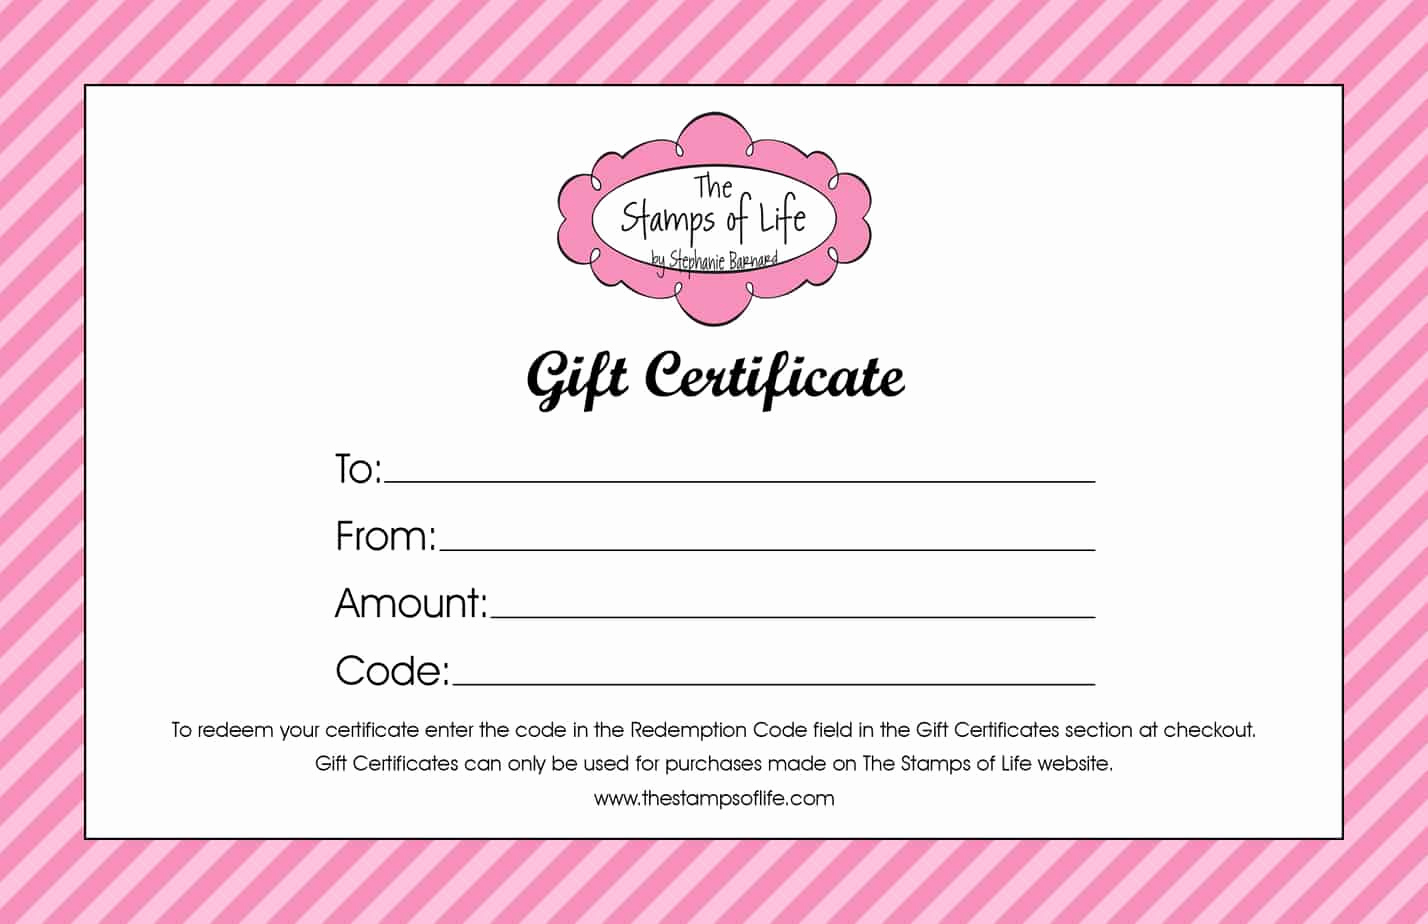 Sample Gift Certificate Template Beautiful 21 Free Free Gift Certificate Templates Word Excel formats